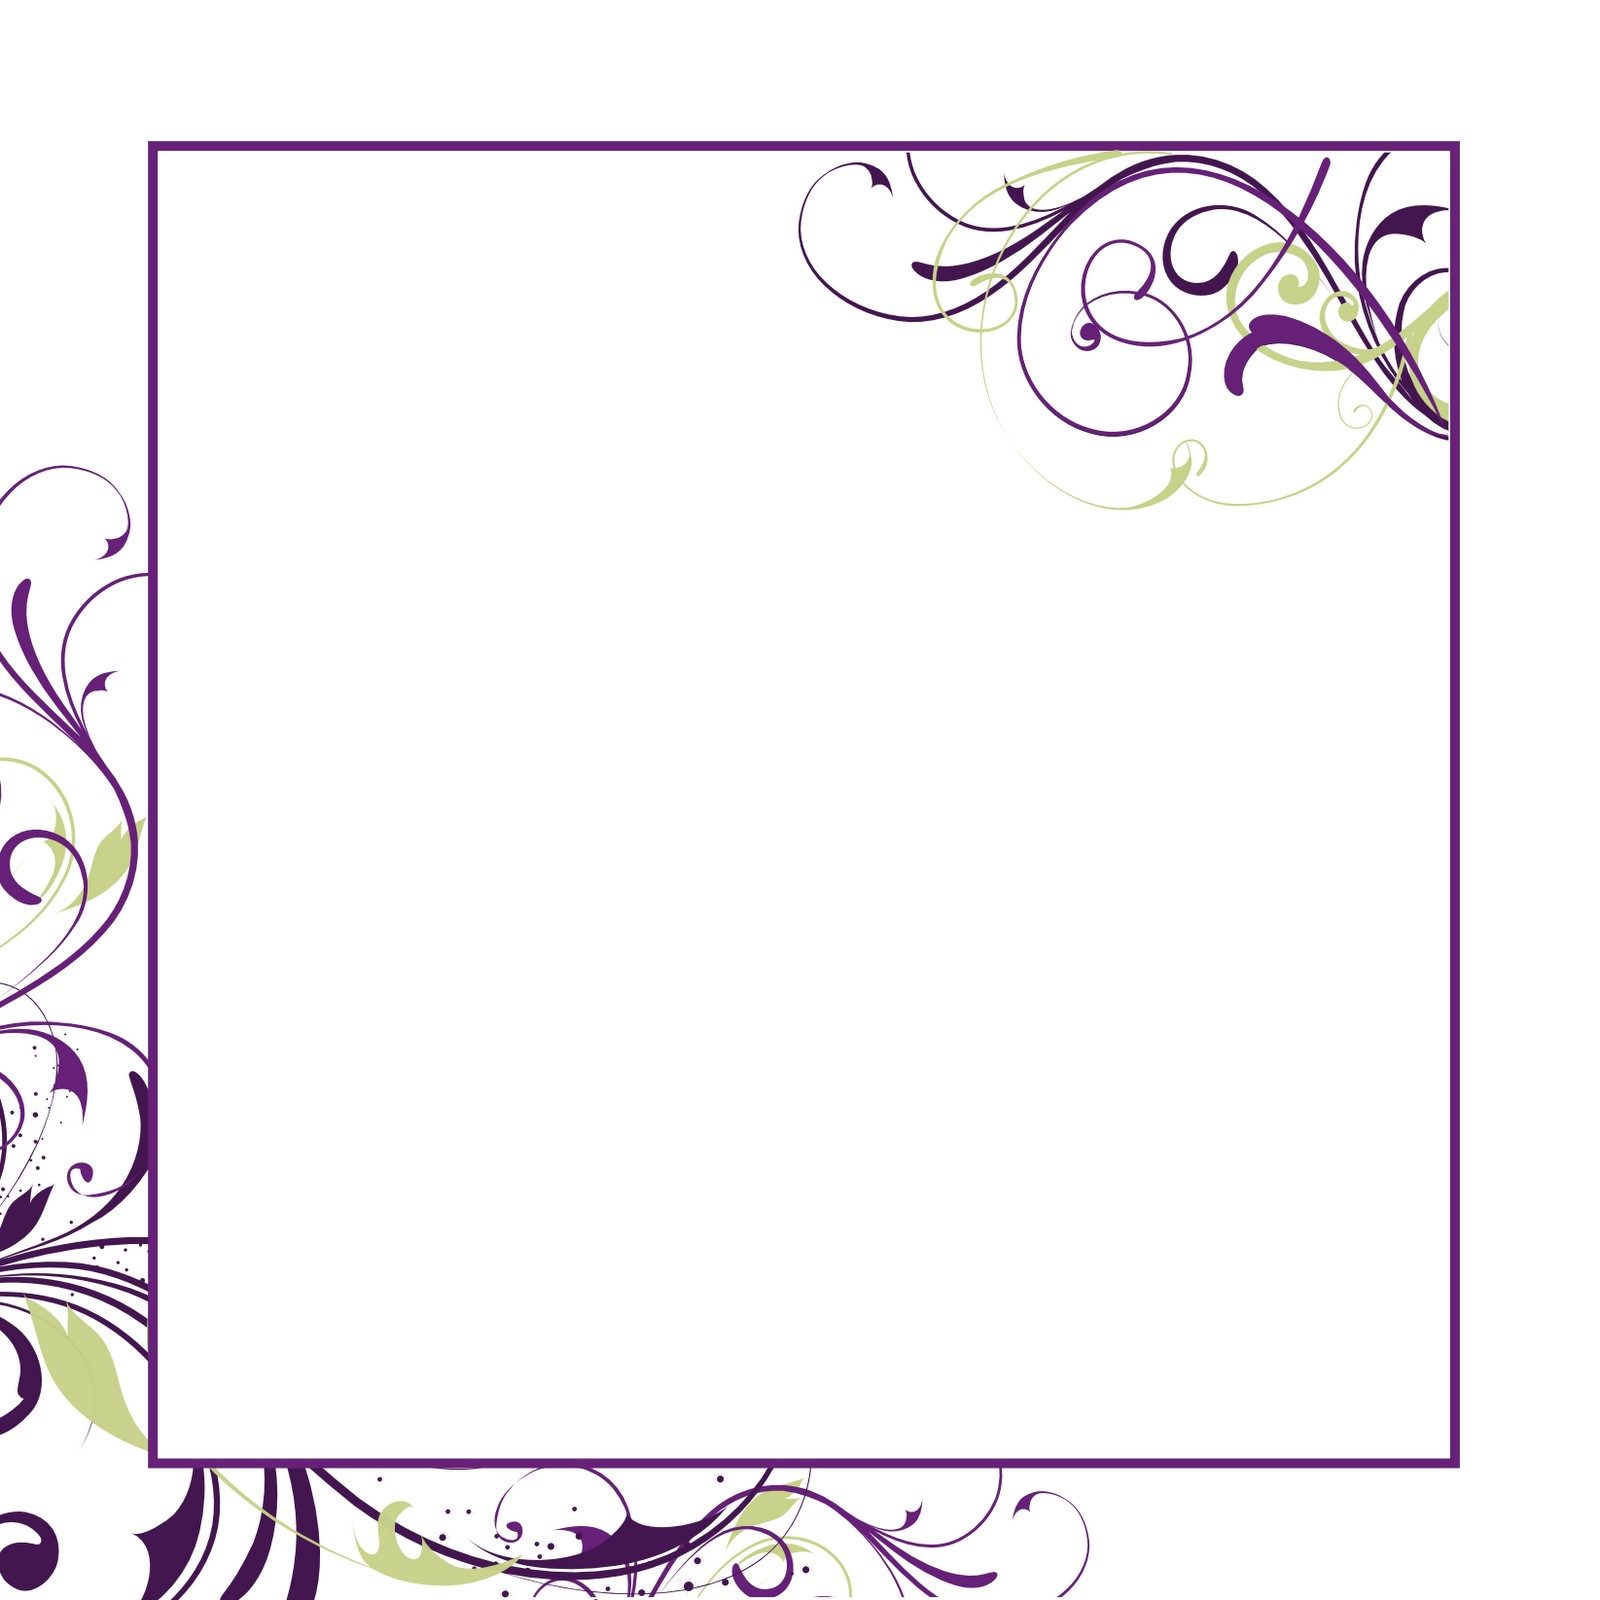 blank-wedding-invitation-paper